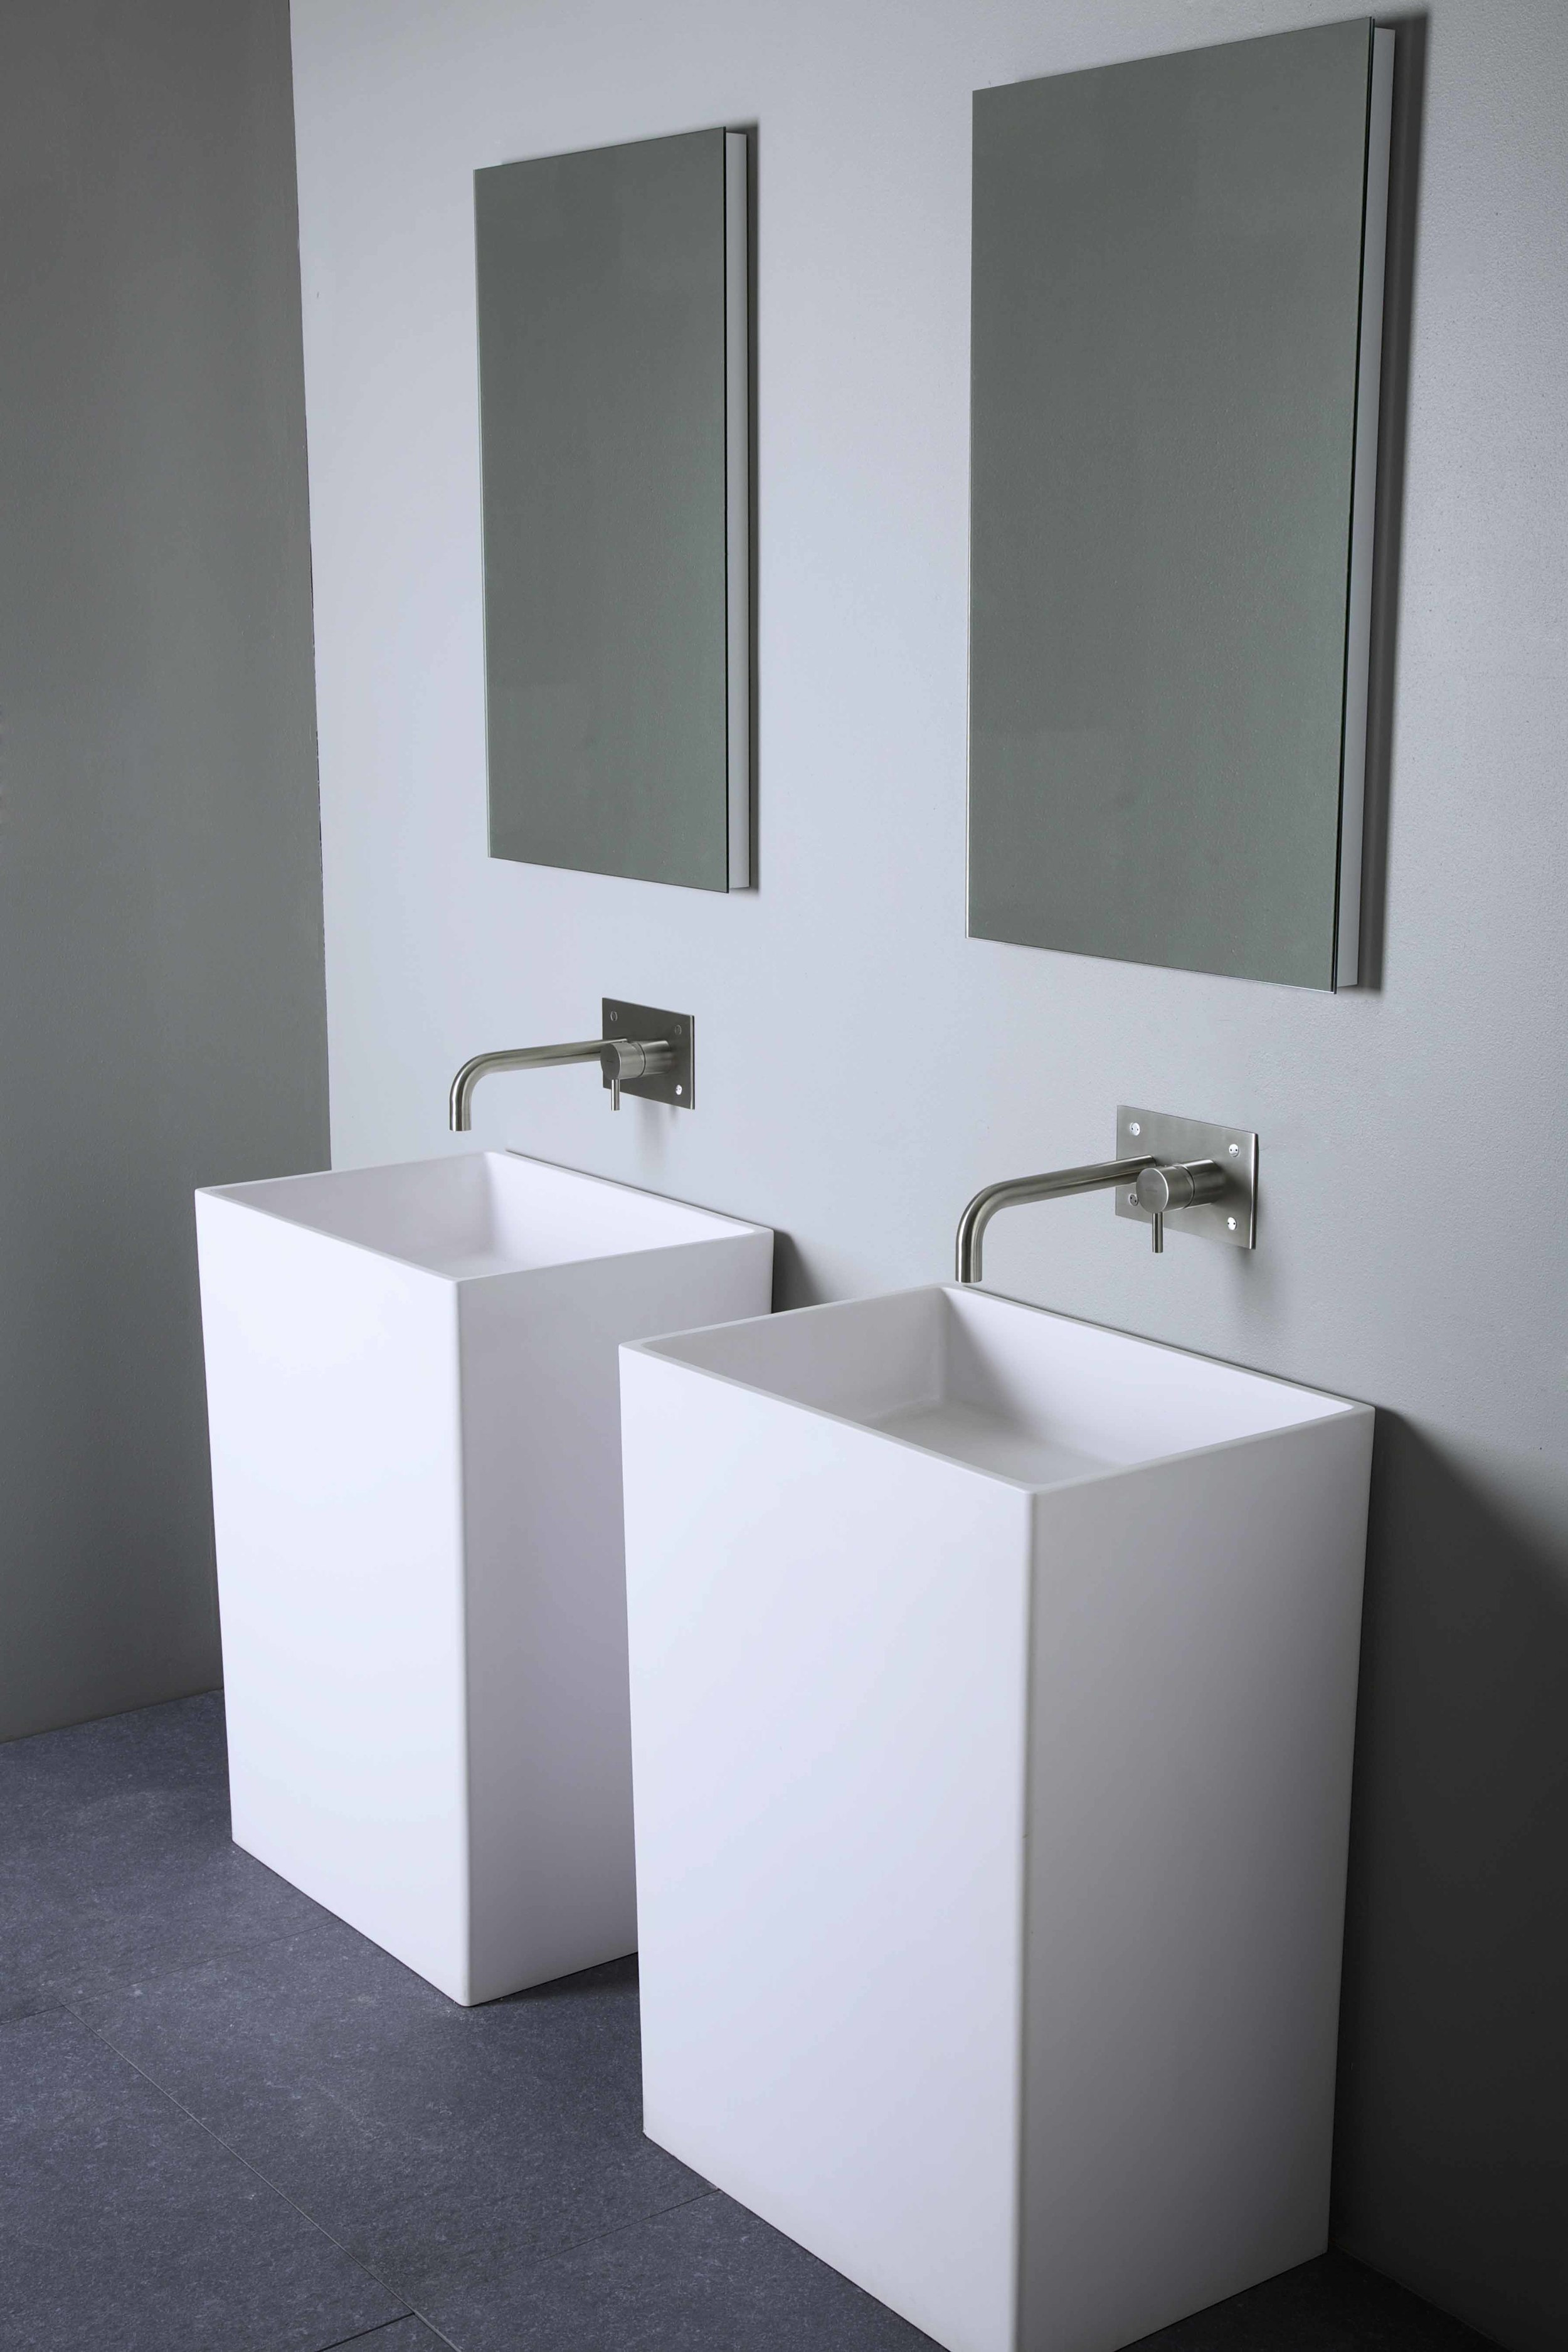 Bagnodesign Princess Nouveau Wash Basins Bagnodesign Luxury Bathrooms Glasgow Bathroom